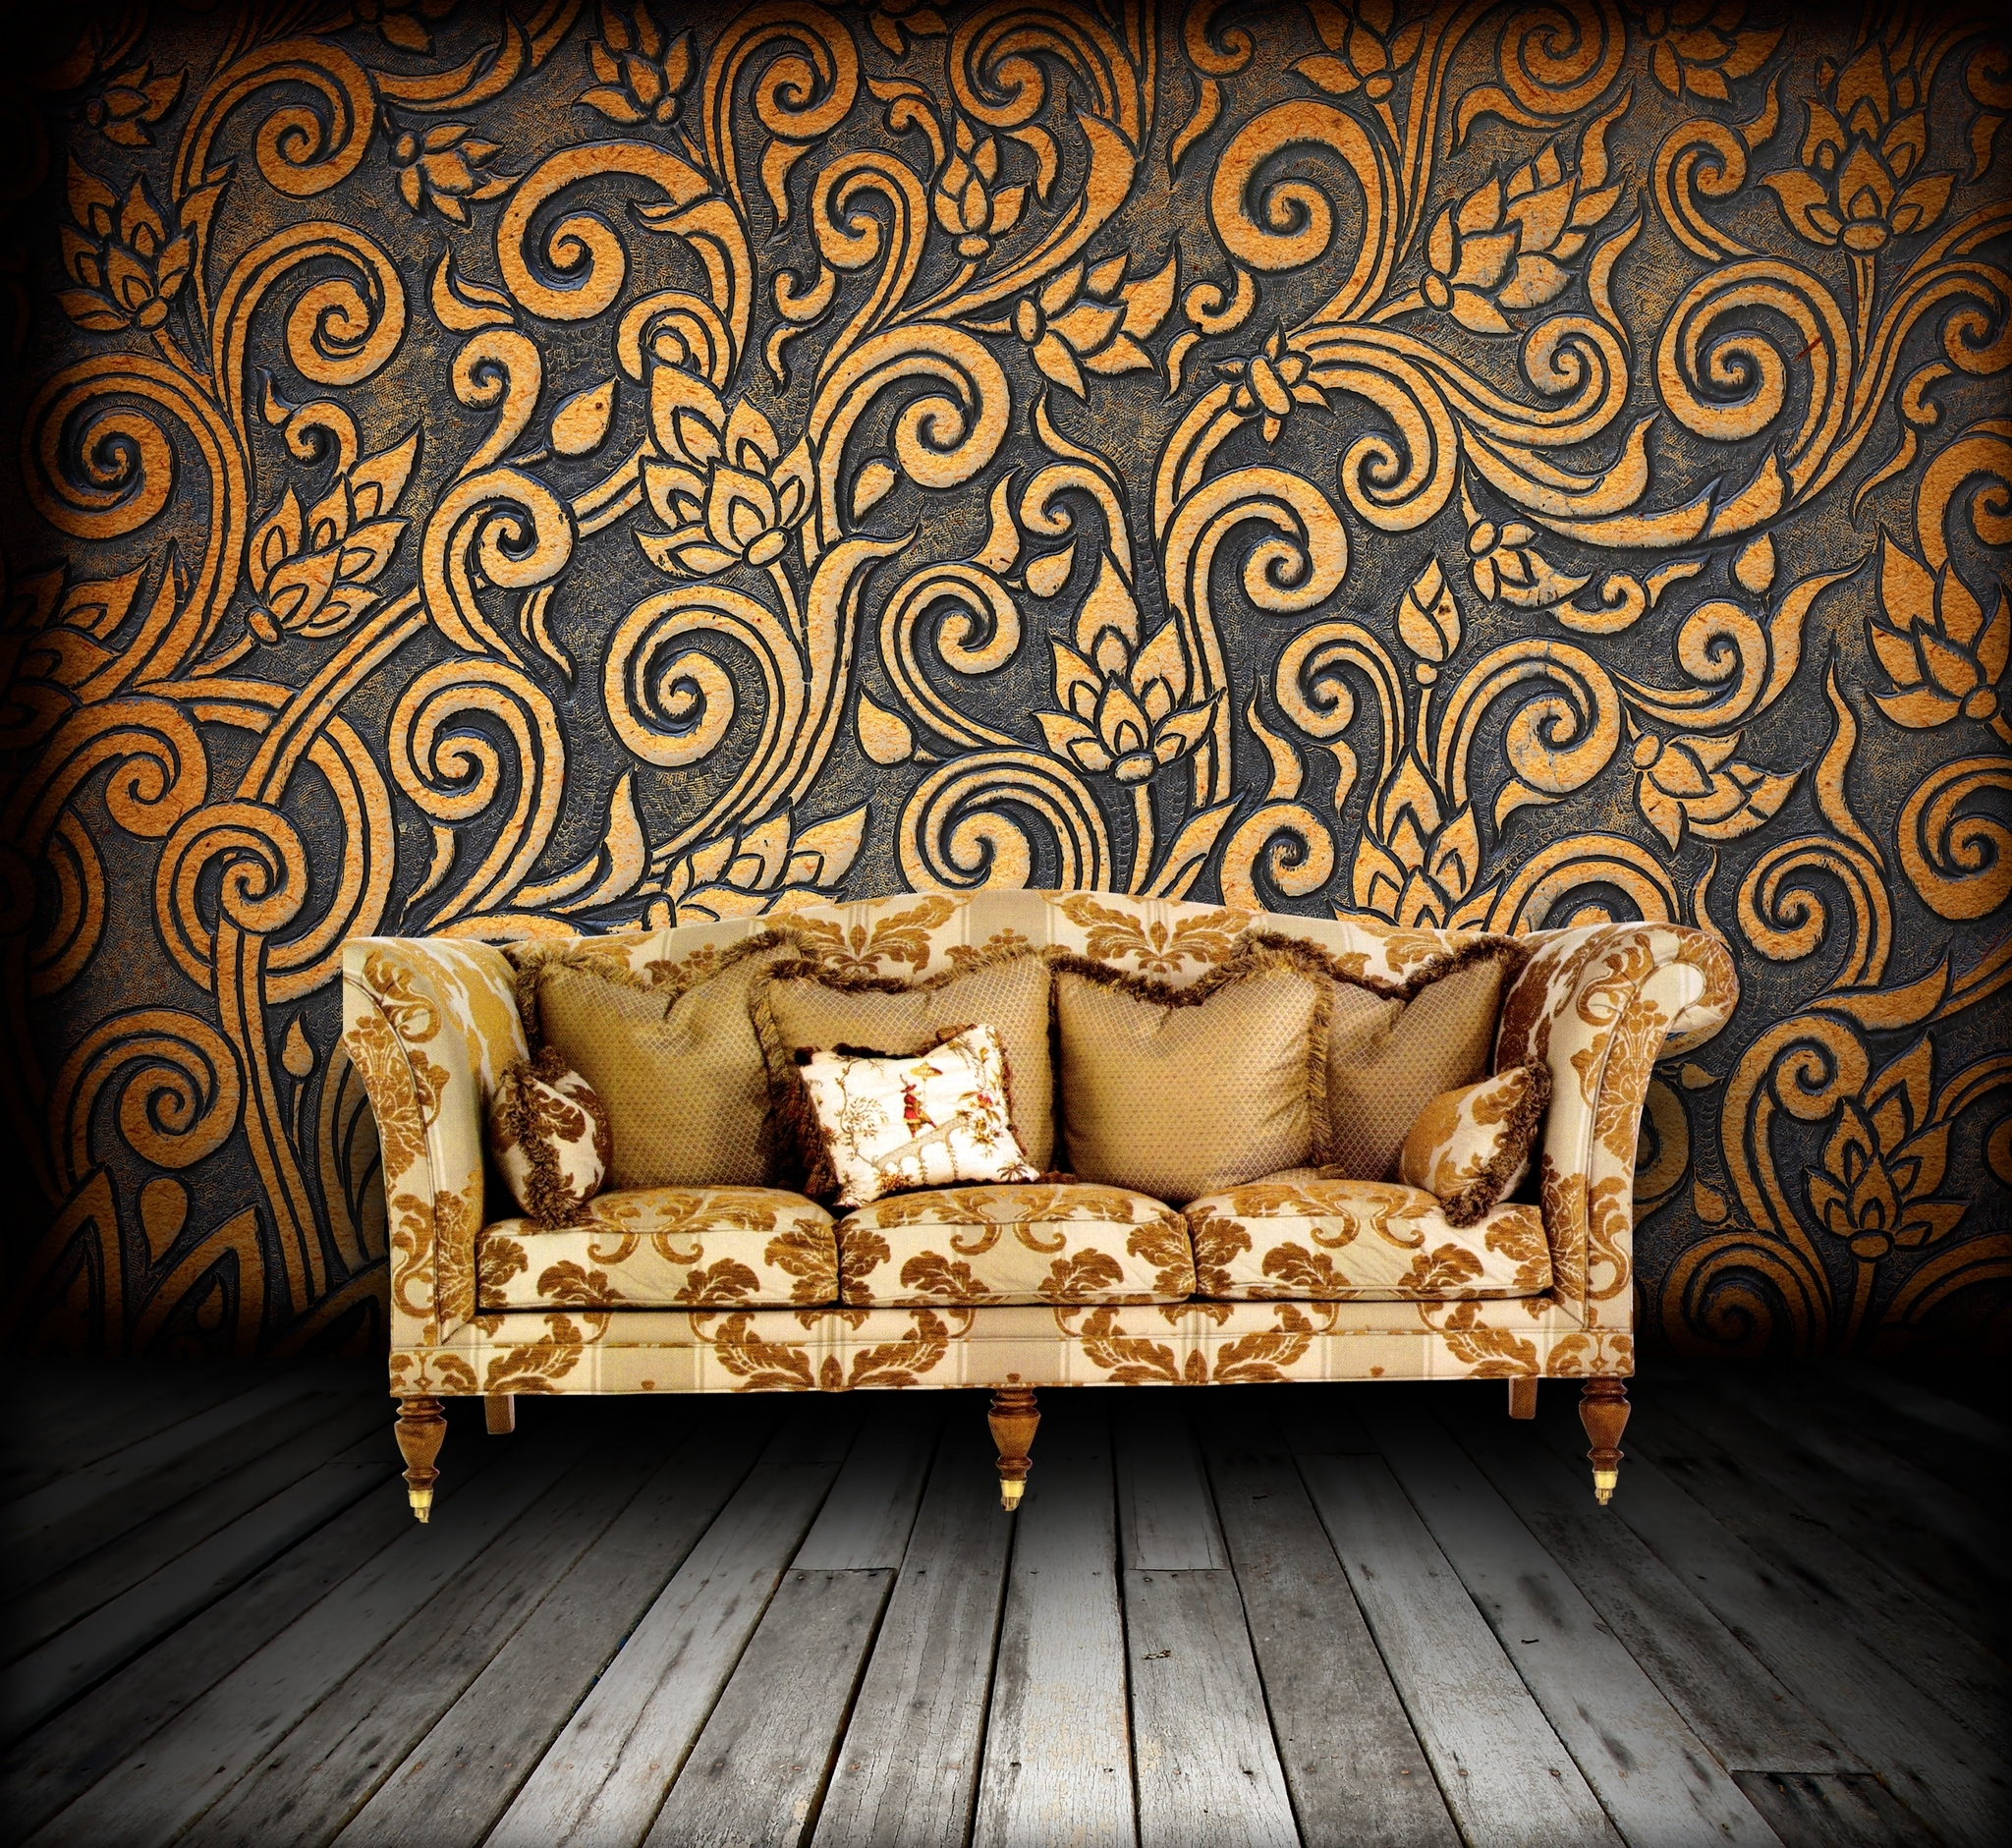 Wallpaper Design Photo : Designs images grunge interior hd wallpaper and background